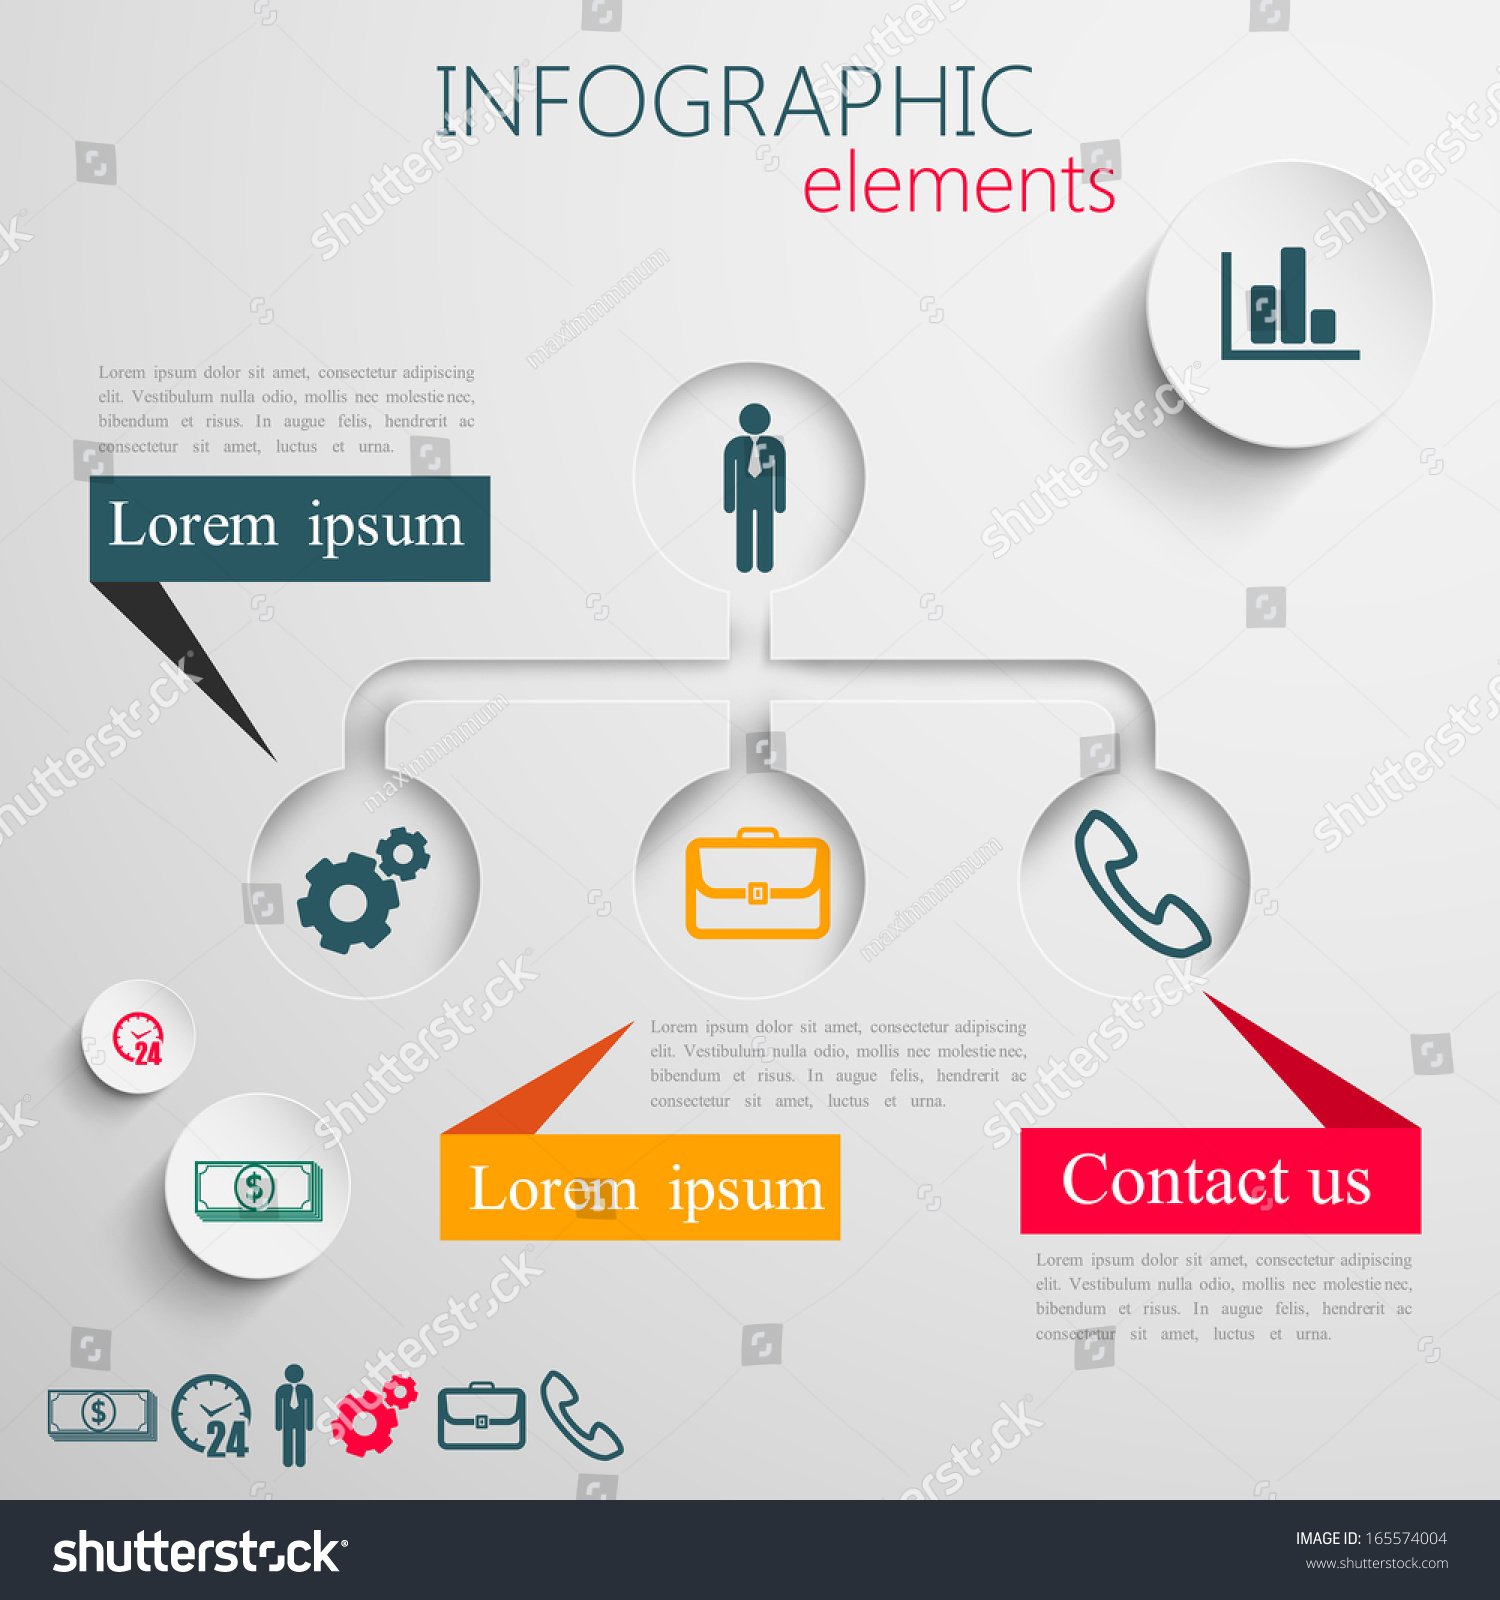 Infographic design graphic